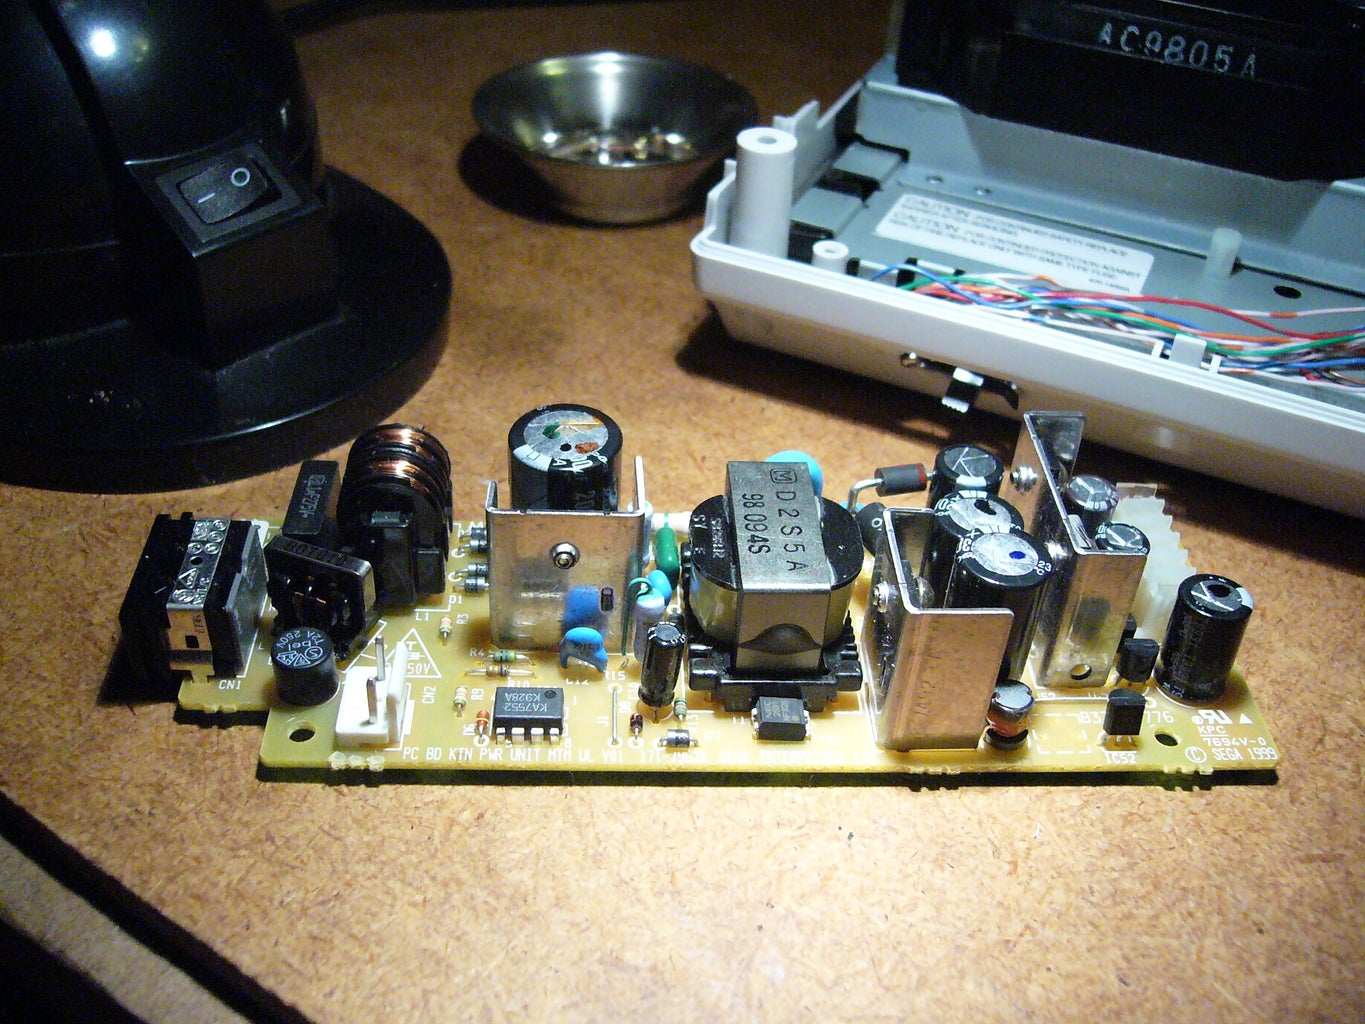 Remove the Power Supply.